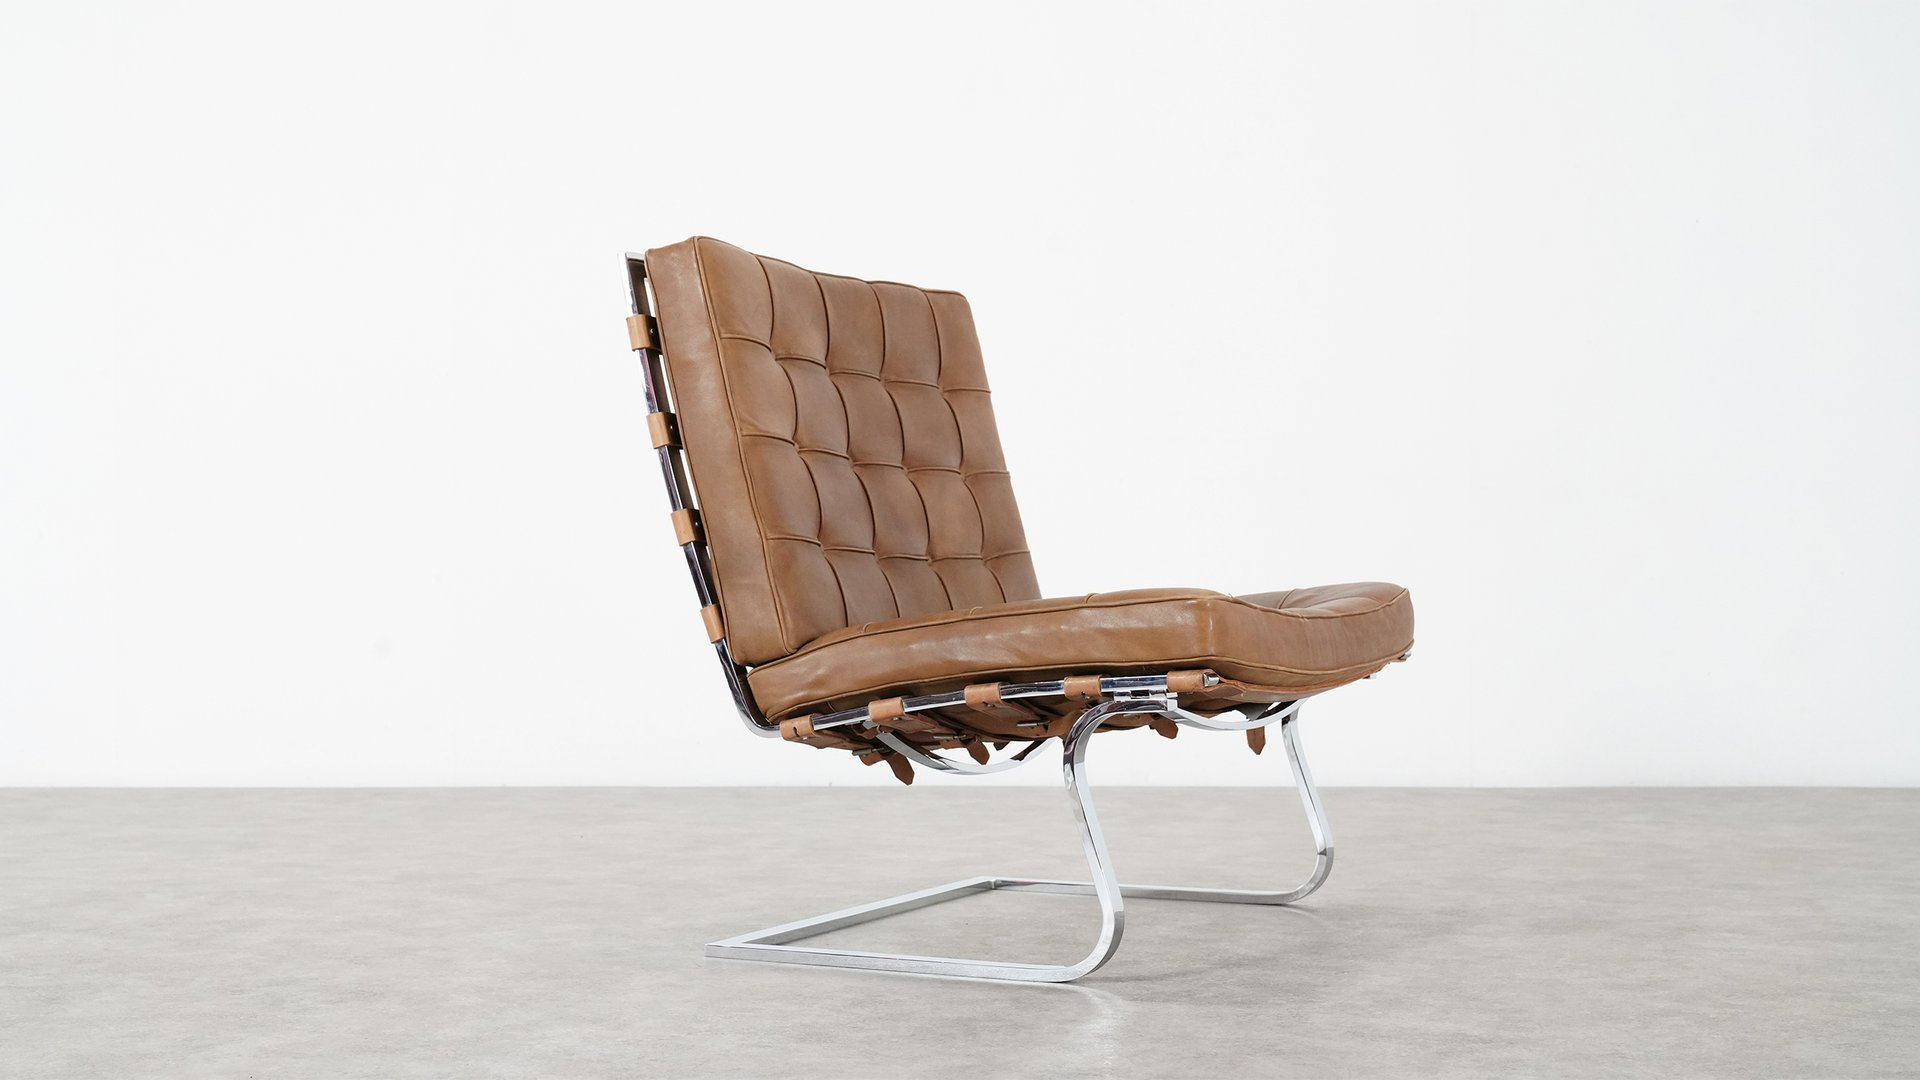 Vintage Tugendhat Lounge Chair Mr 70 By Ludwig Mies Van Der Rohe For